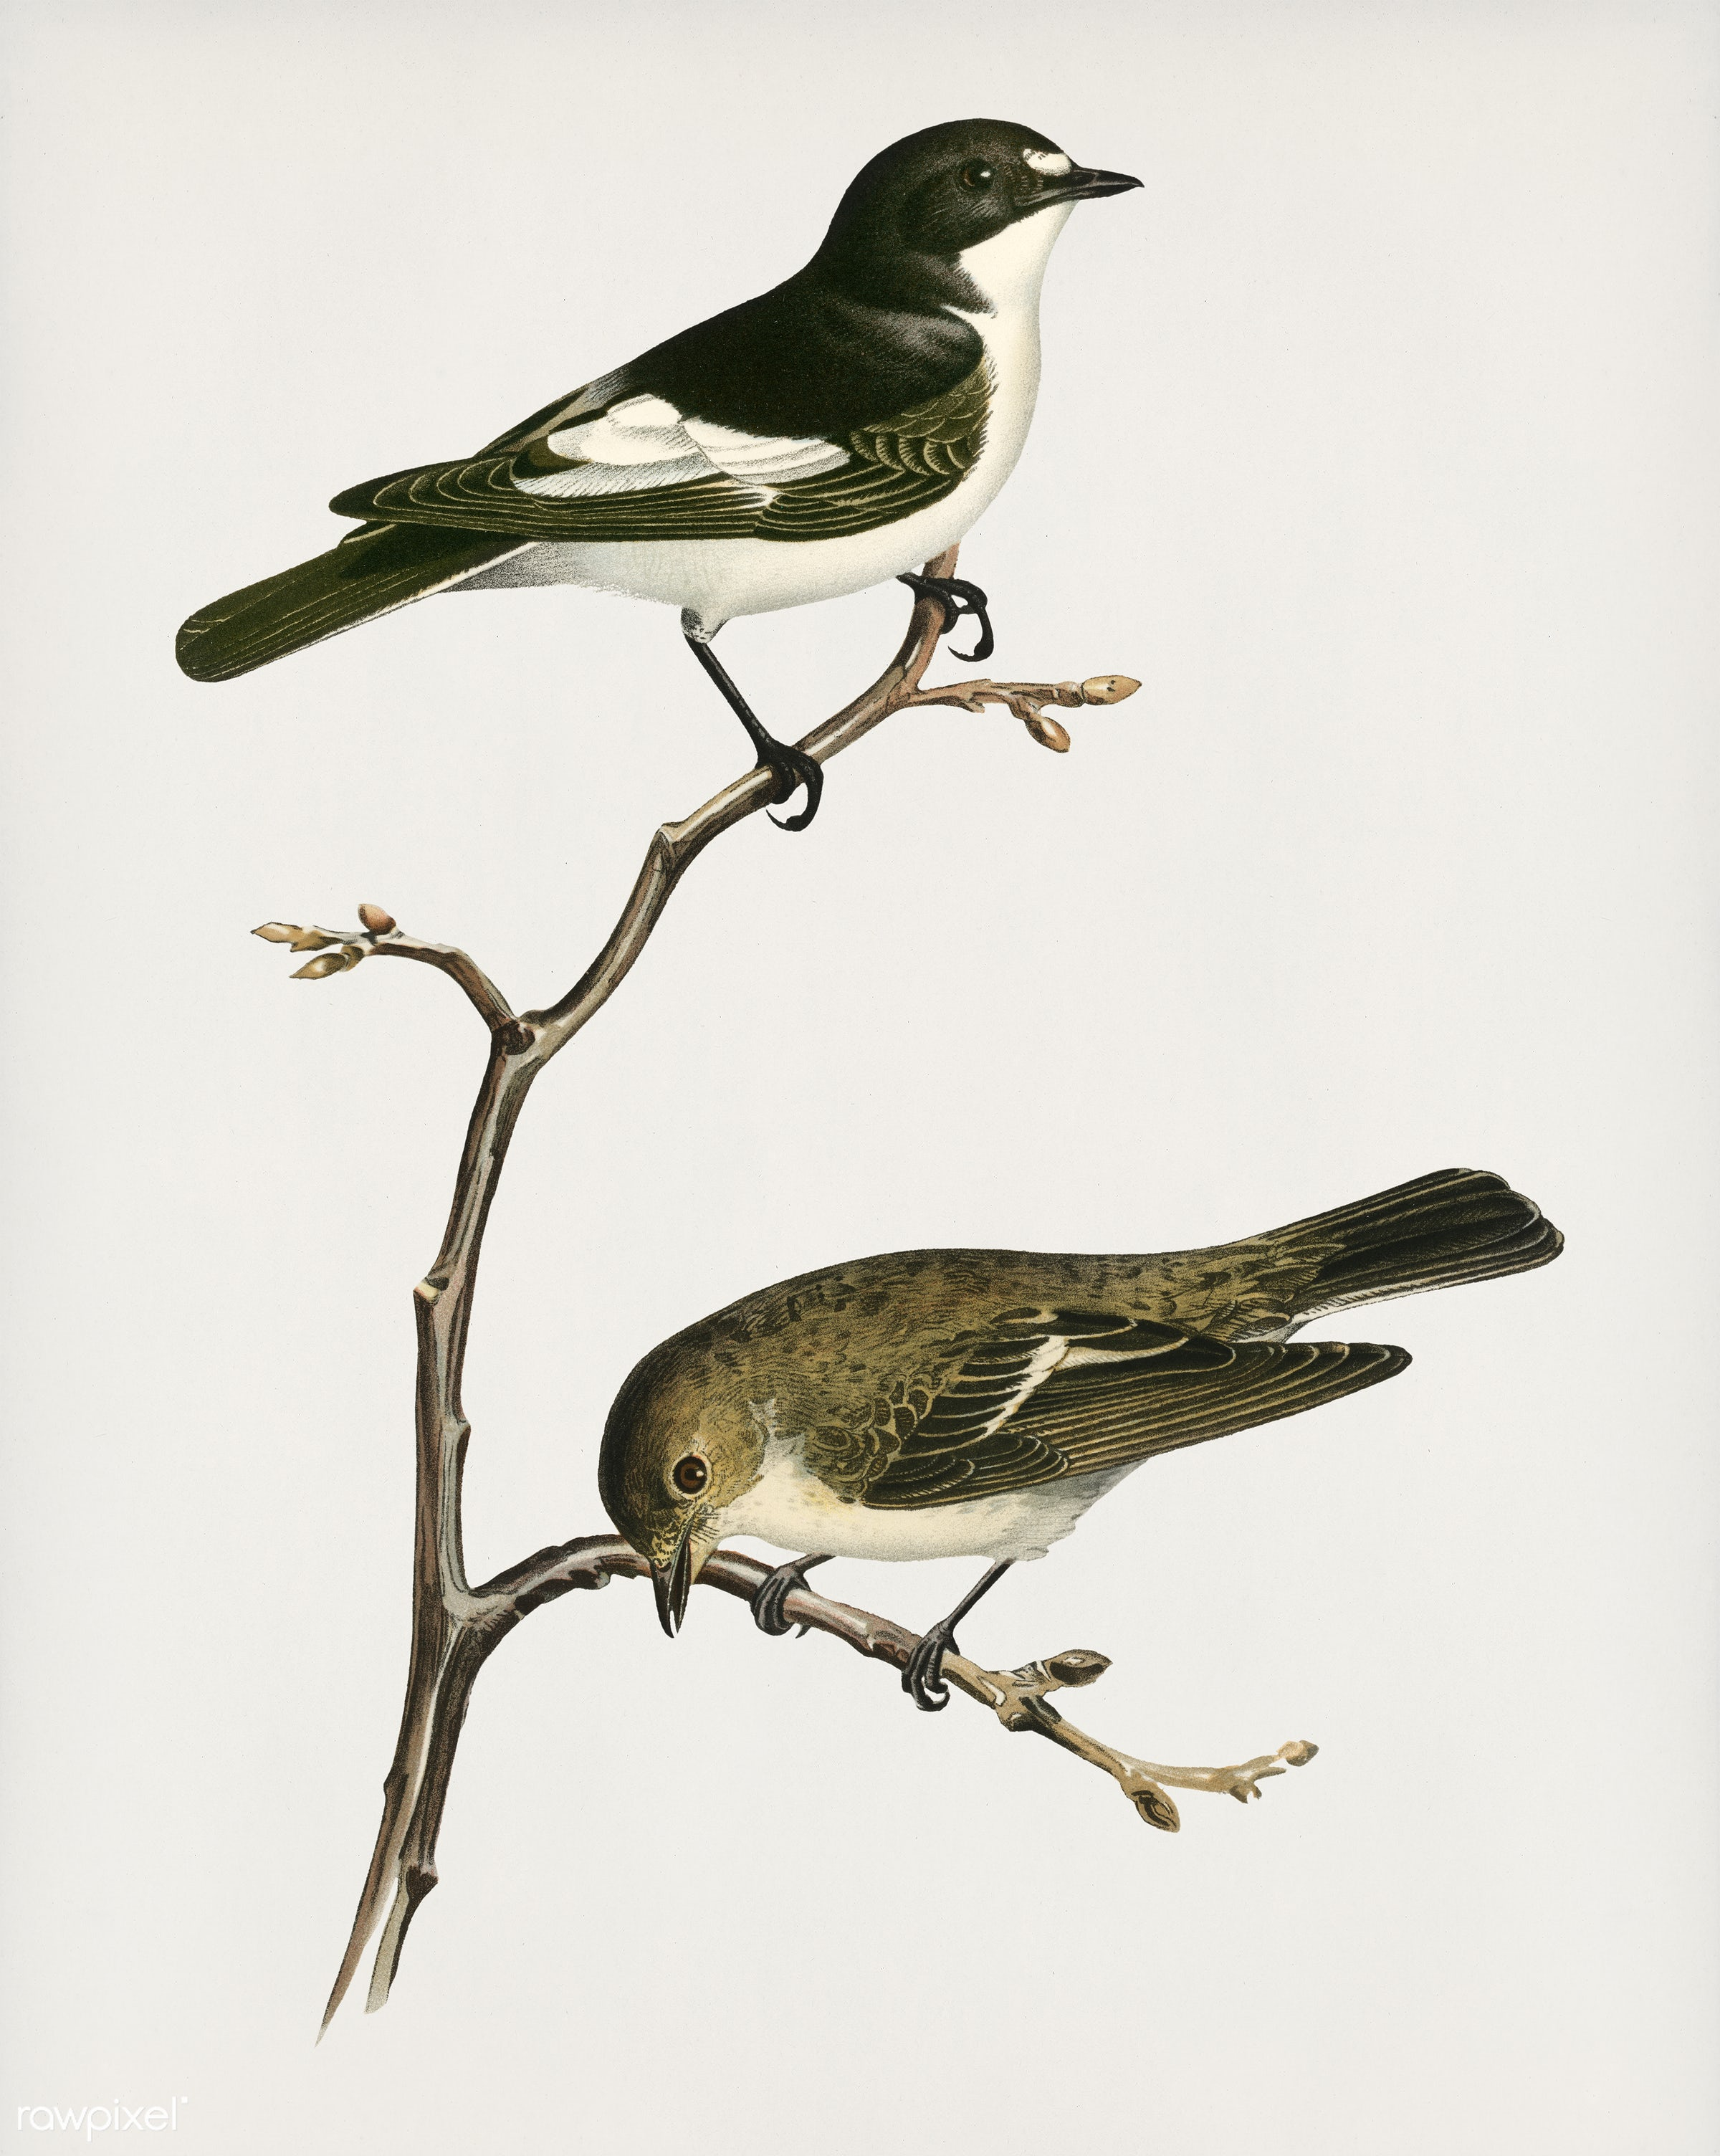 Pied Flycatcher (Muscicapa atricapilla) illustrated by the von Wright brothers. Digitally enhanced from our own 1929 folio...